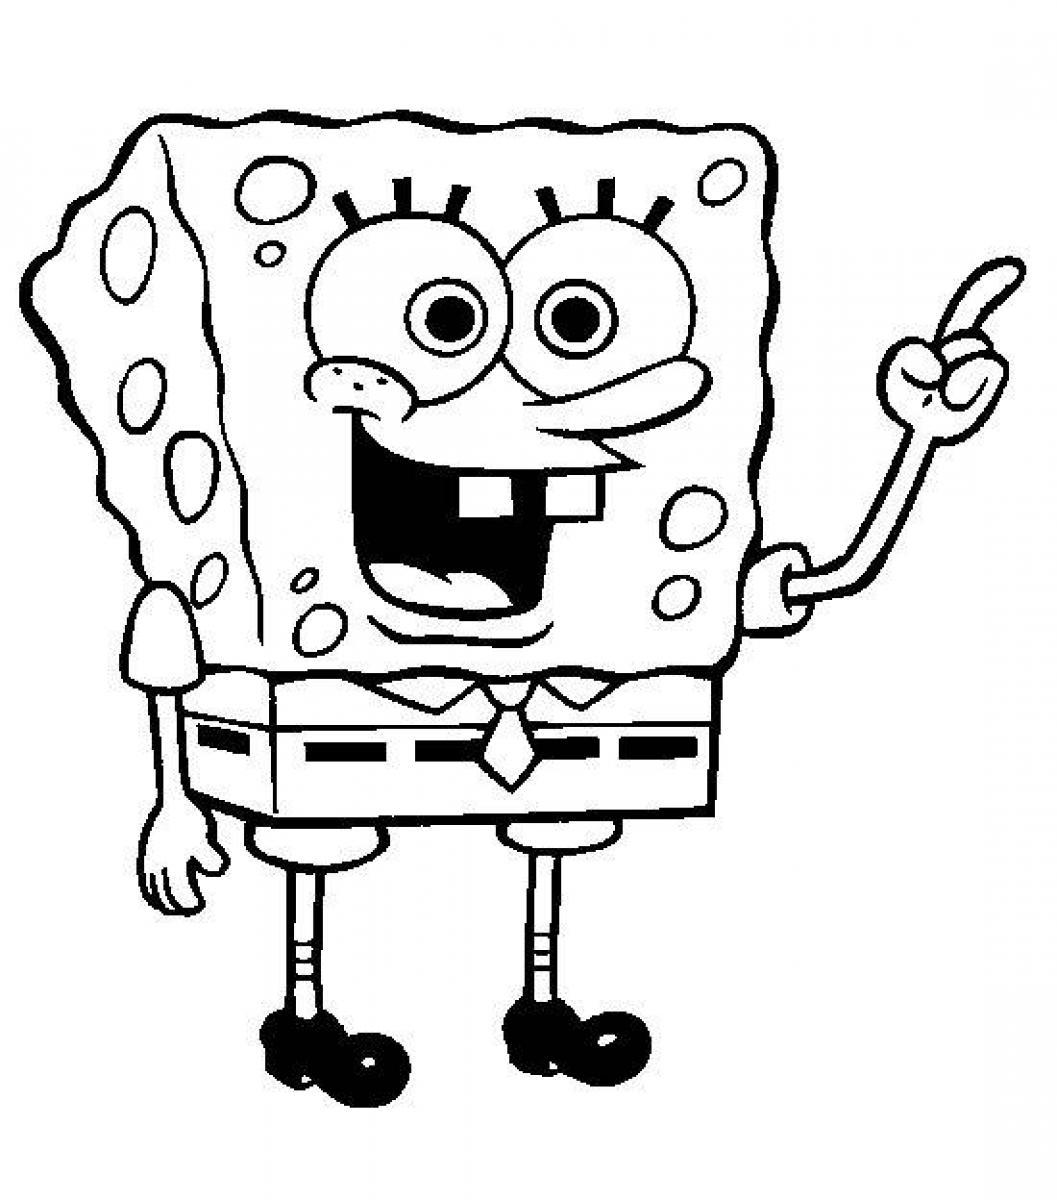 sponge bob coloring printable pages - photo#2